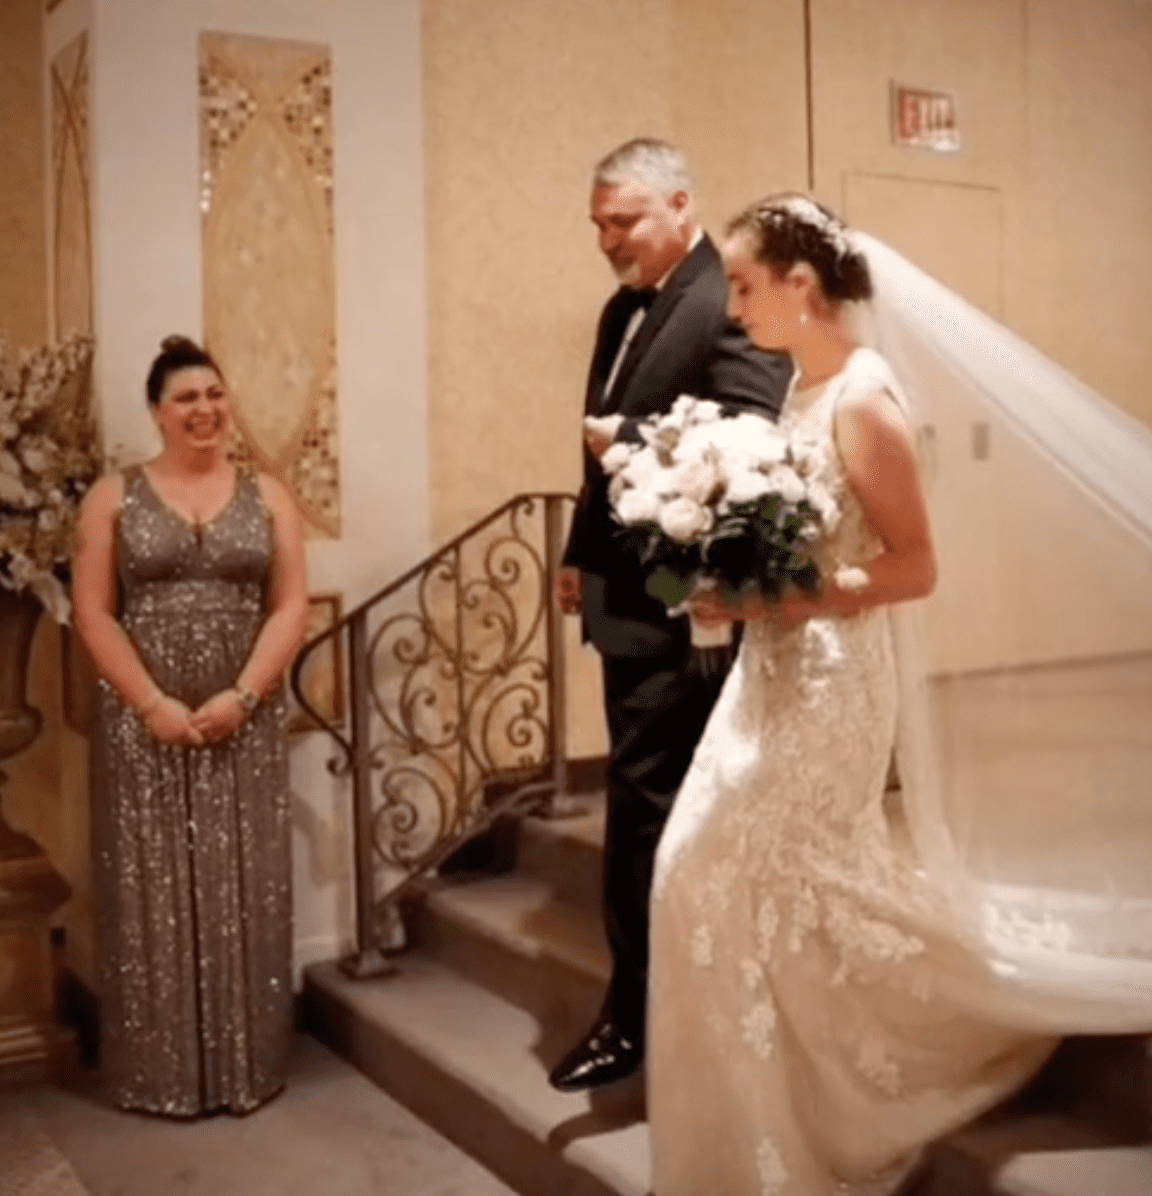 Bride and her donor father walk through the wedding venue arm in arm   Photo: TikTok/thebionicbuffalobeauty